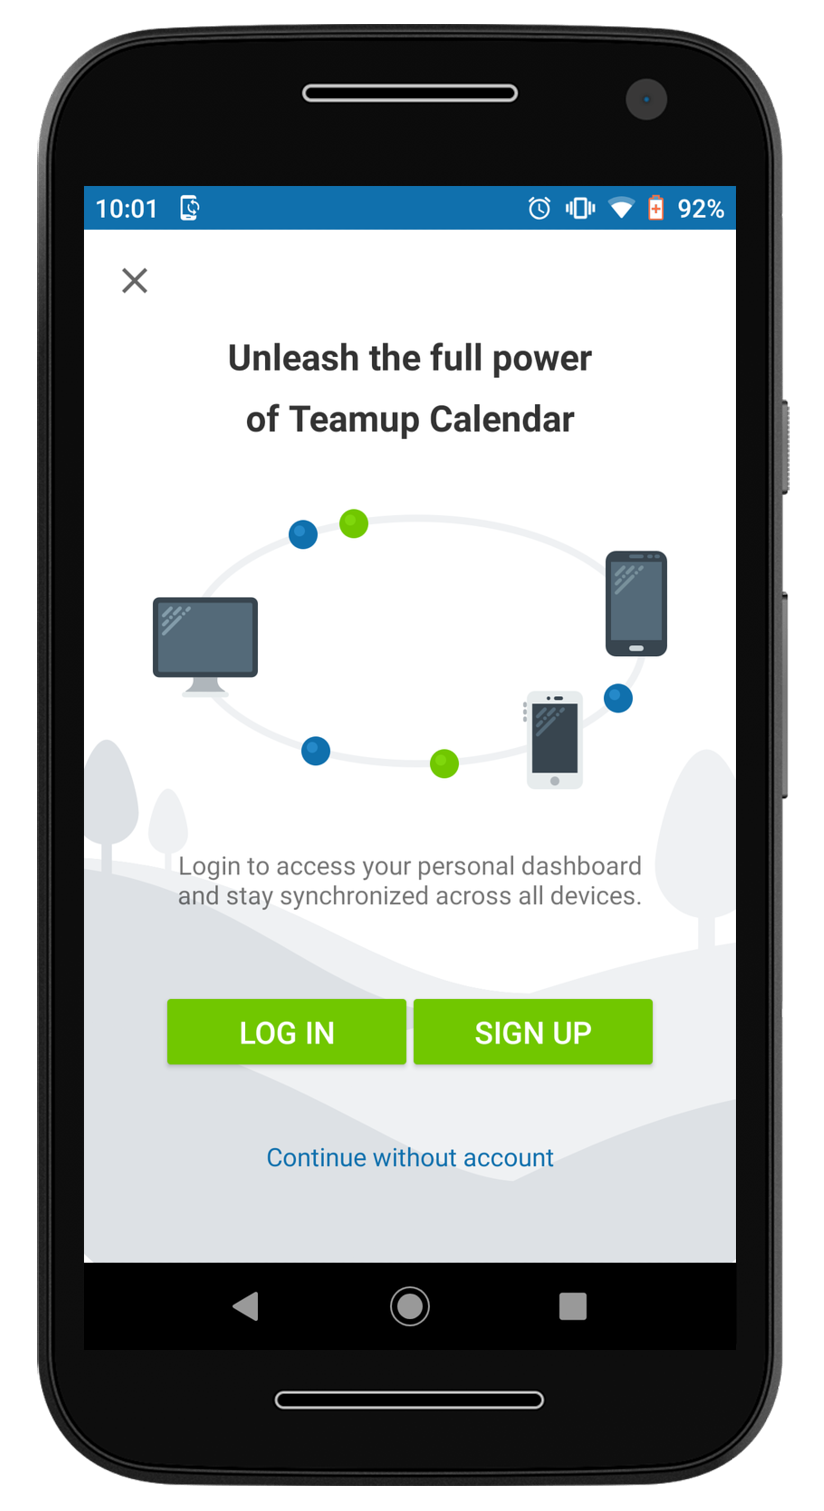 New: Synced Calendar Dashboard on Teamup Android App